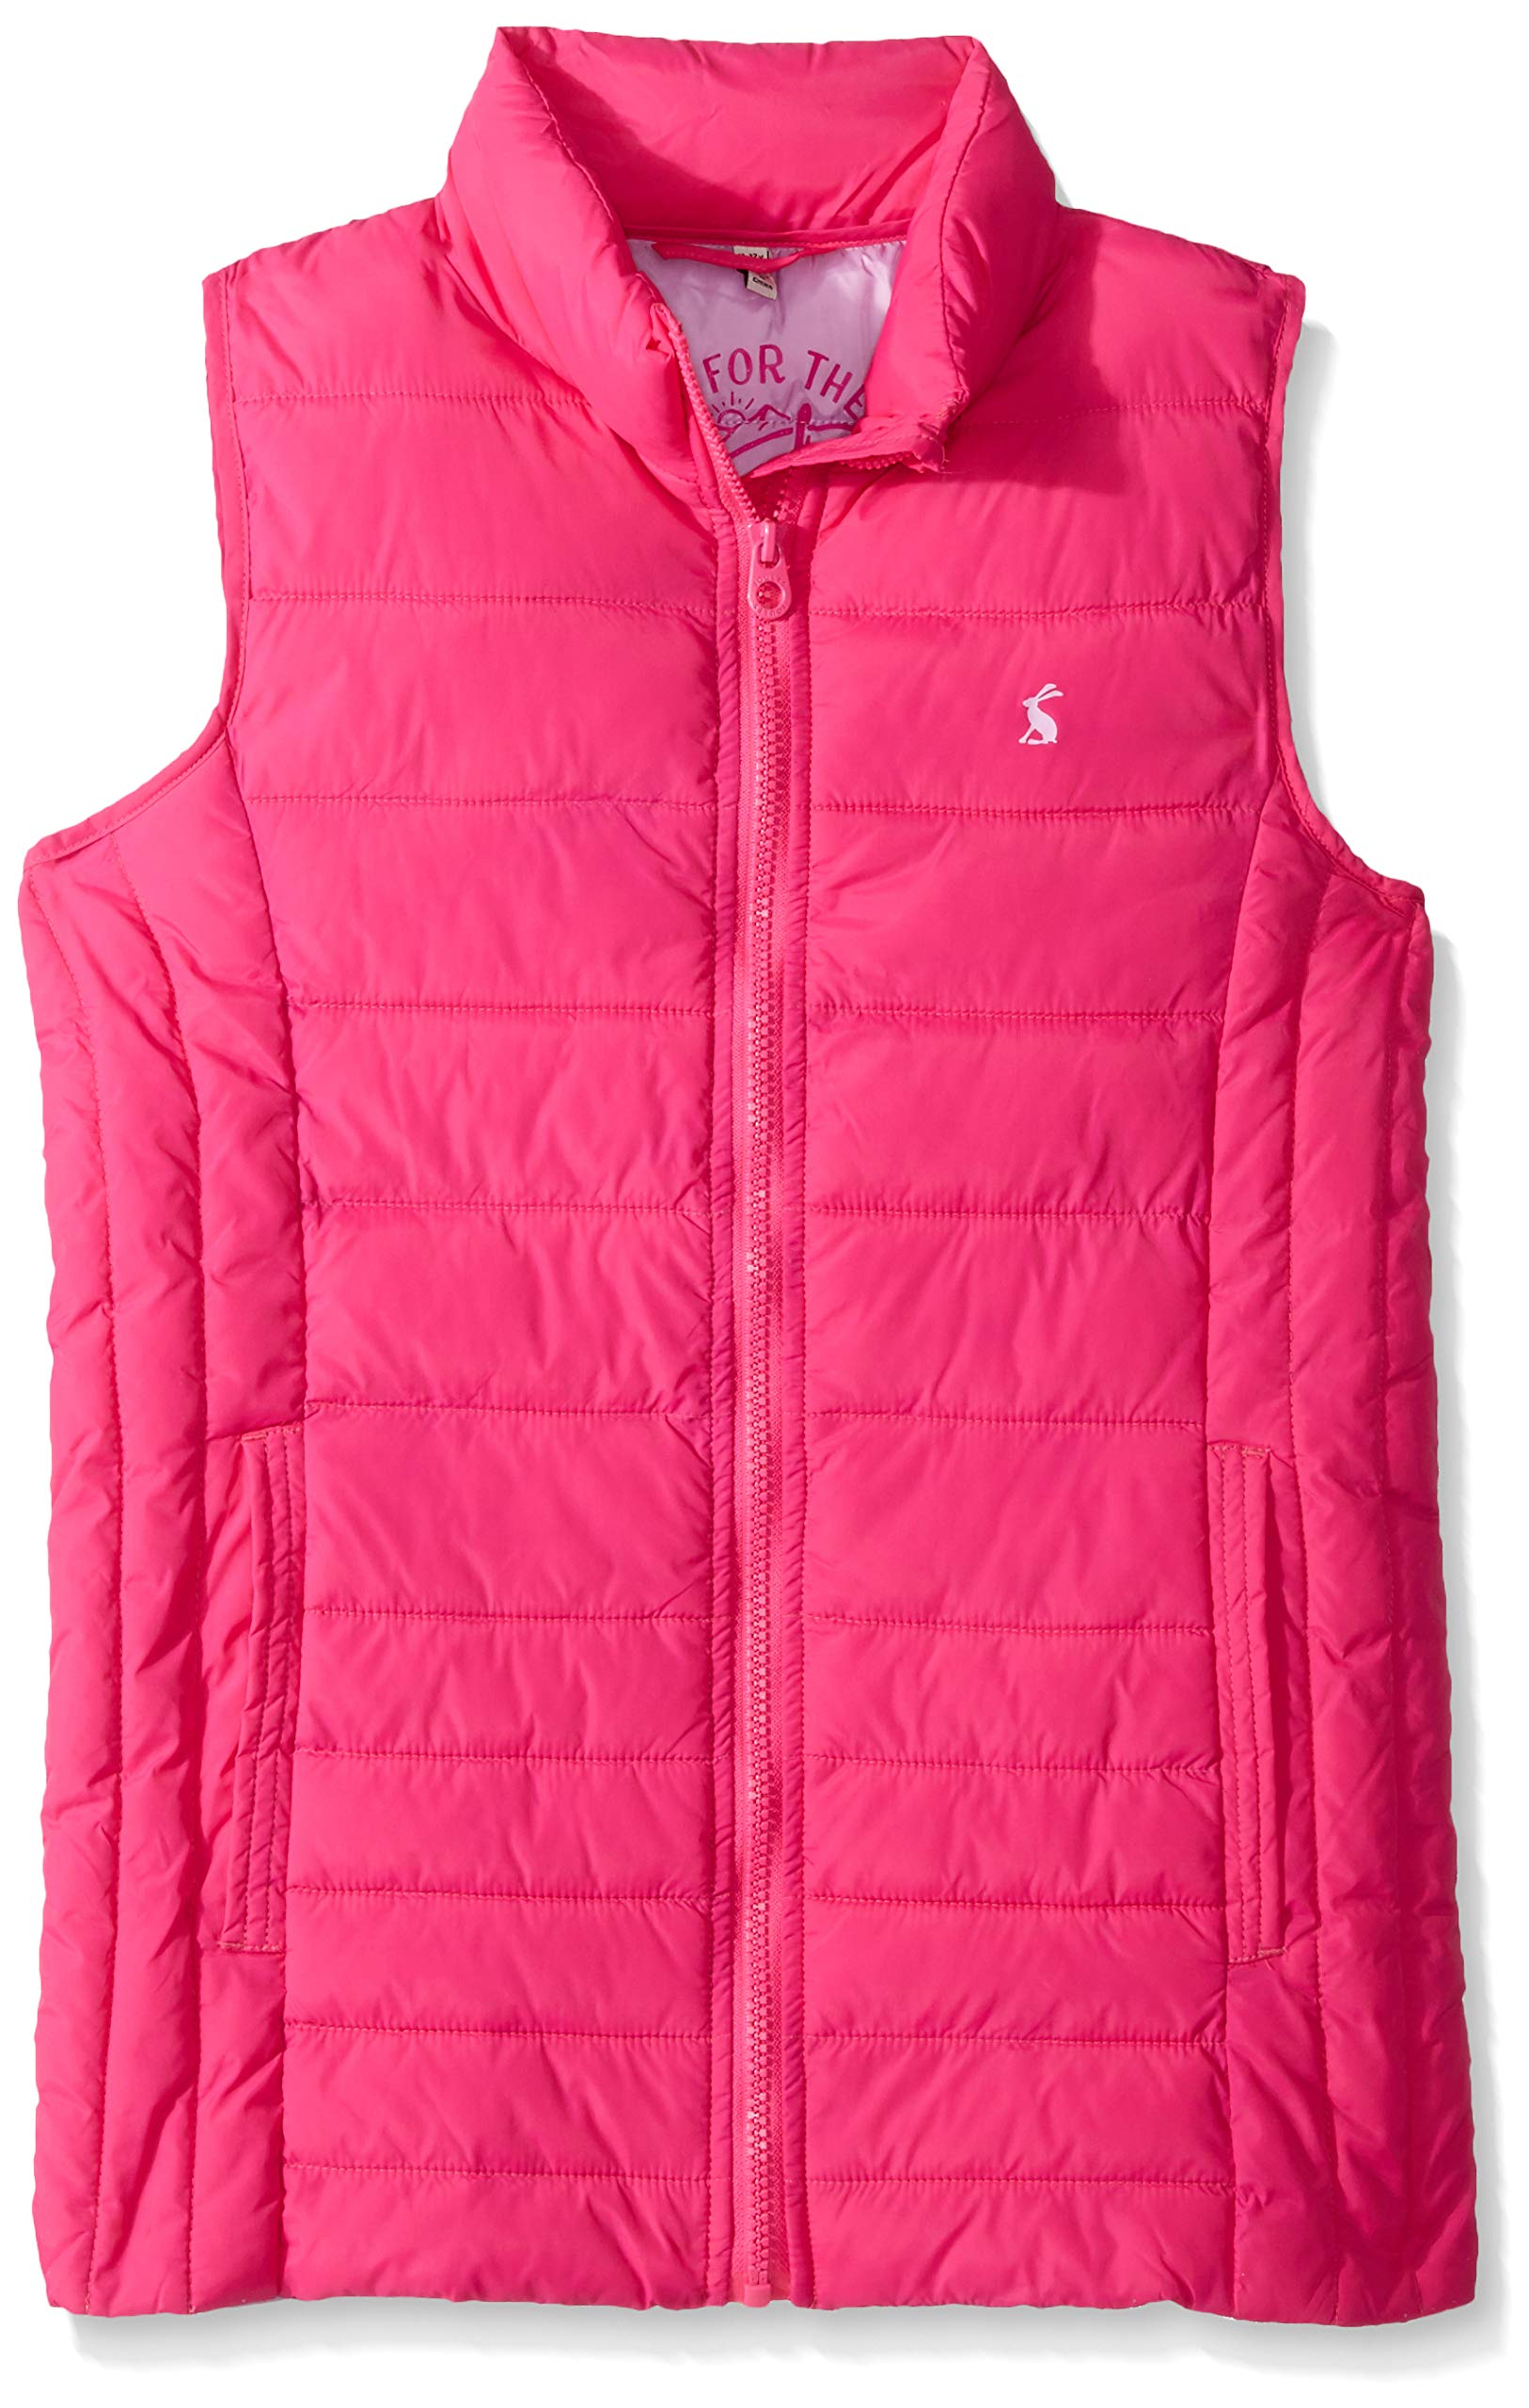 Joules Big Girls' Older Croft, TRUPINK 3 by Joules